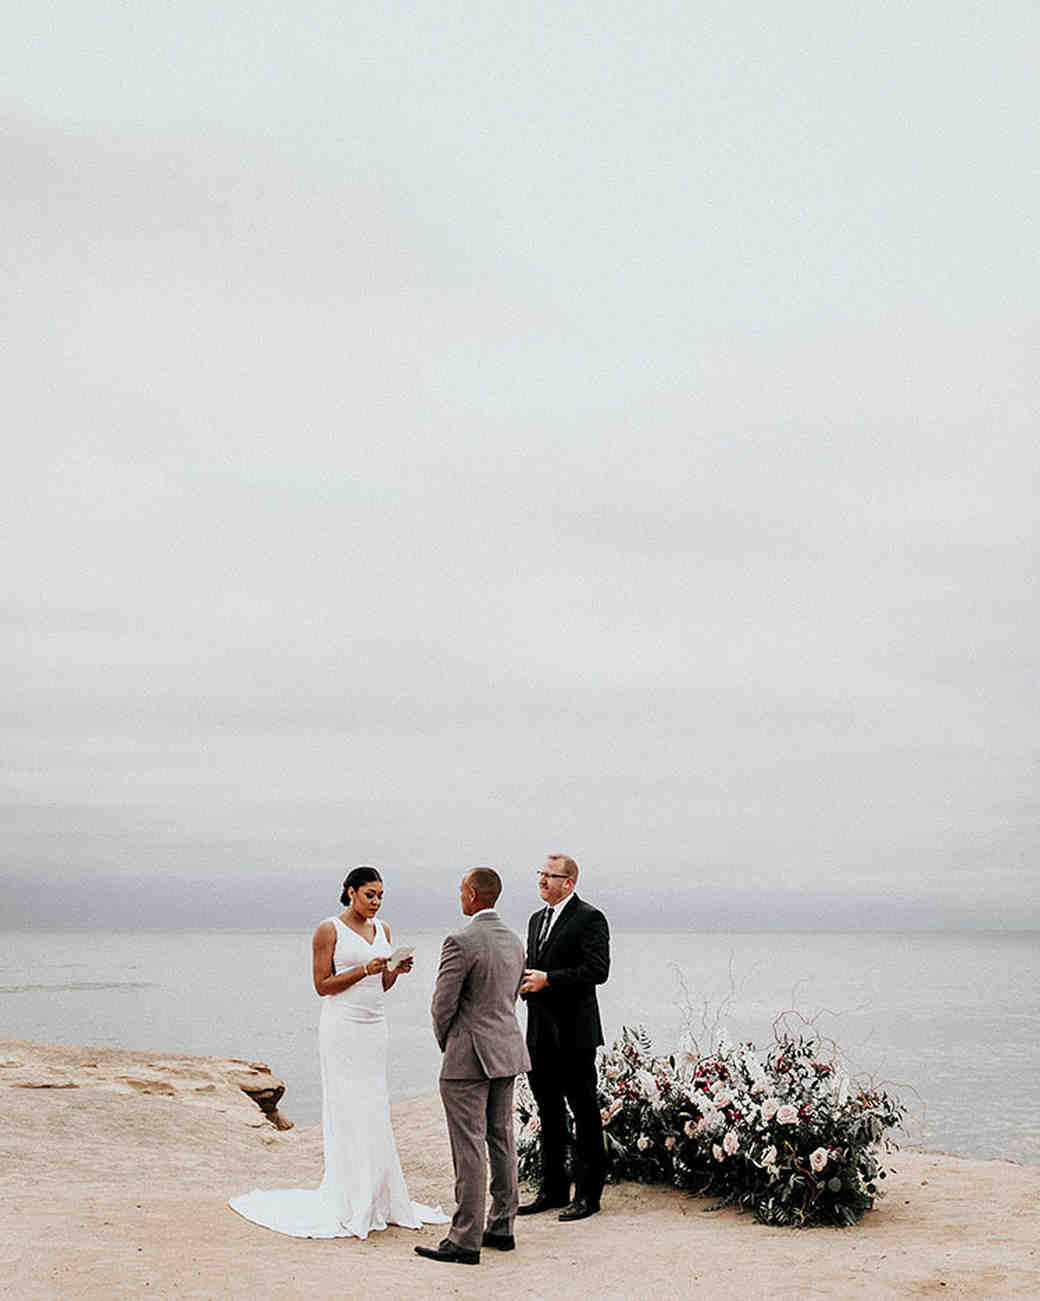 wedding ground floral small arch beach front